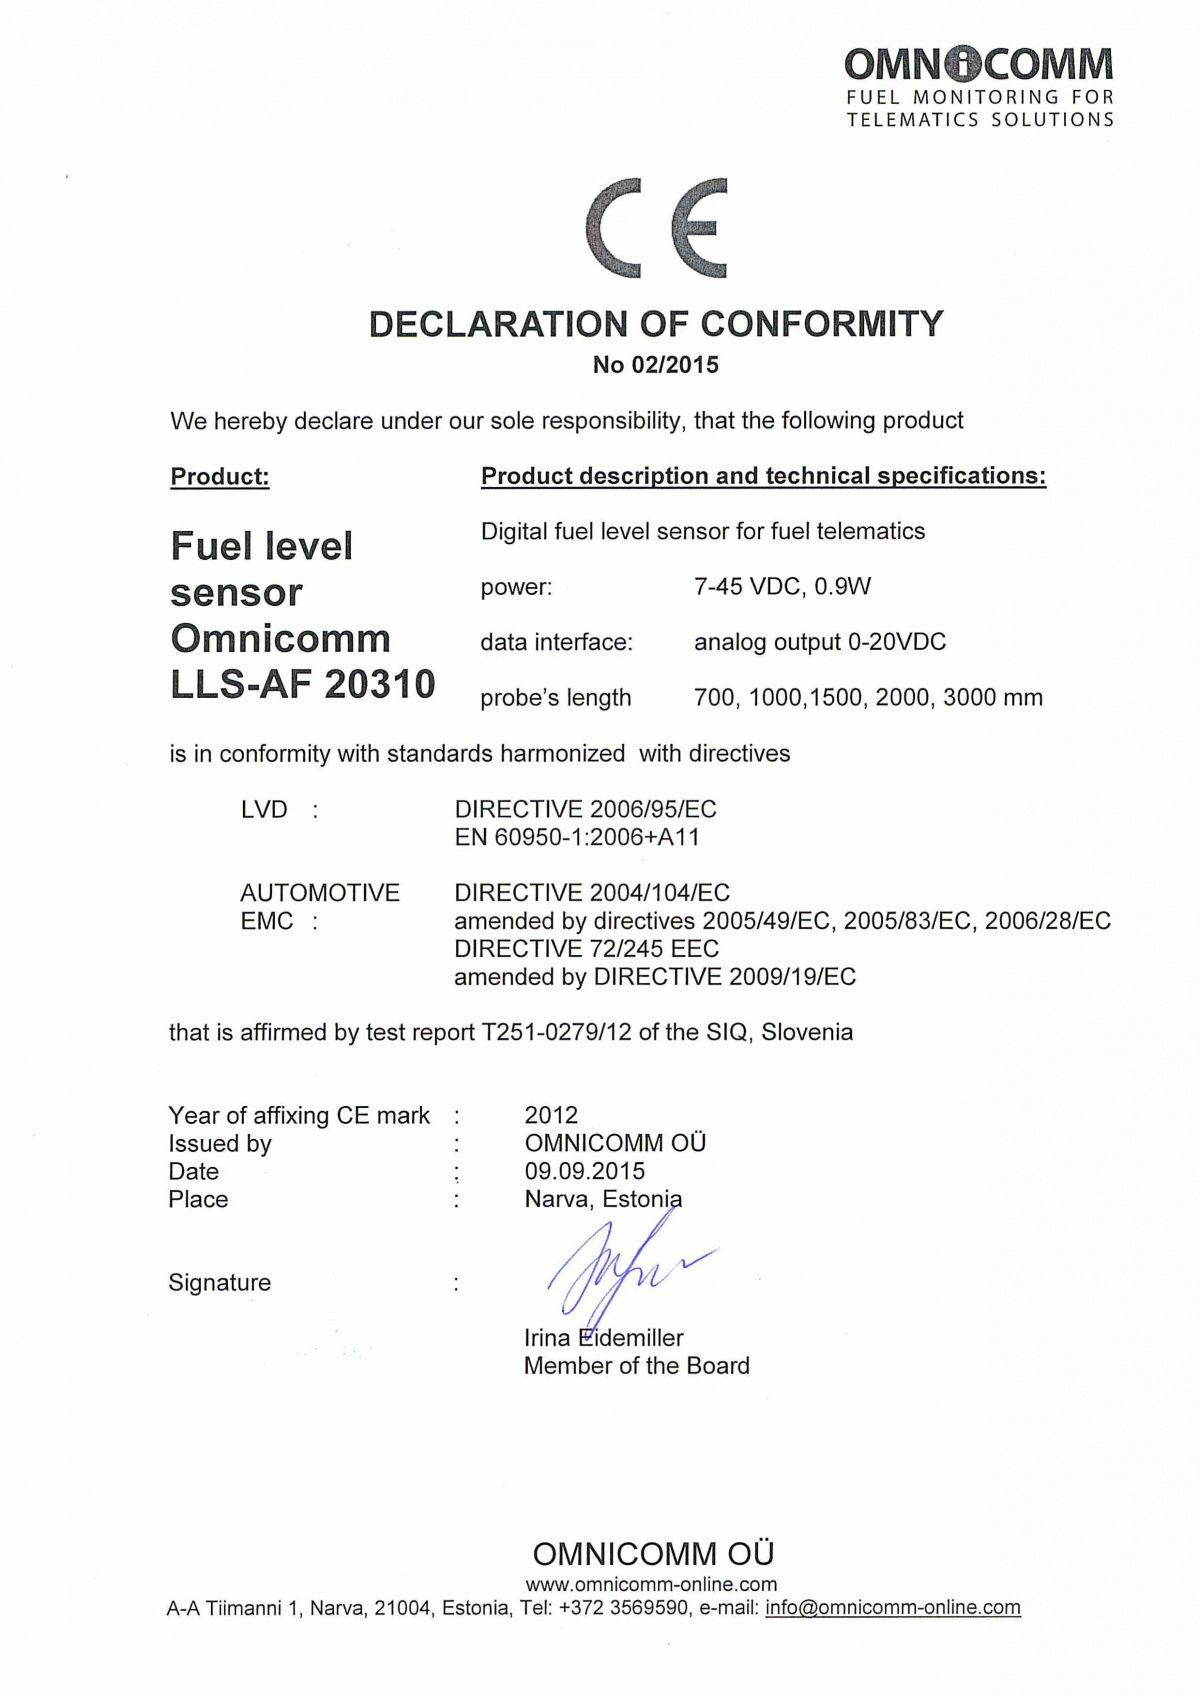 Declaration of CE Conformity OMNICOMM Fuel-Level Sensor LLS-AF 20310